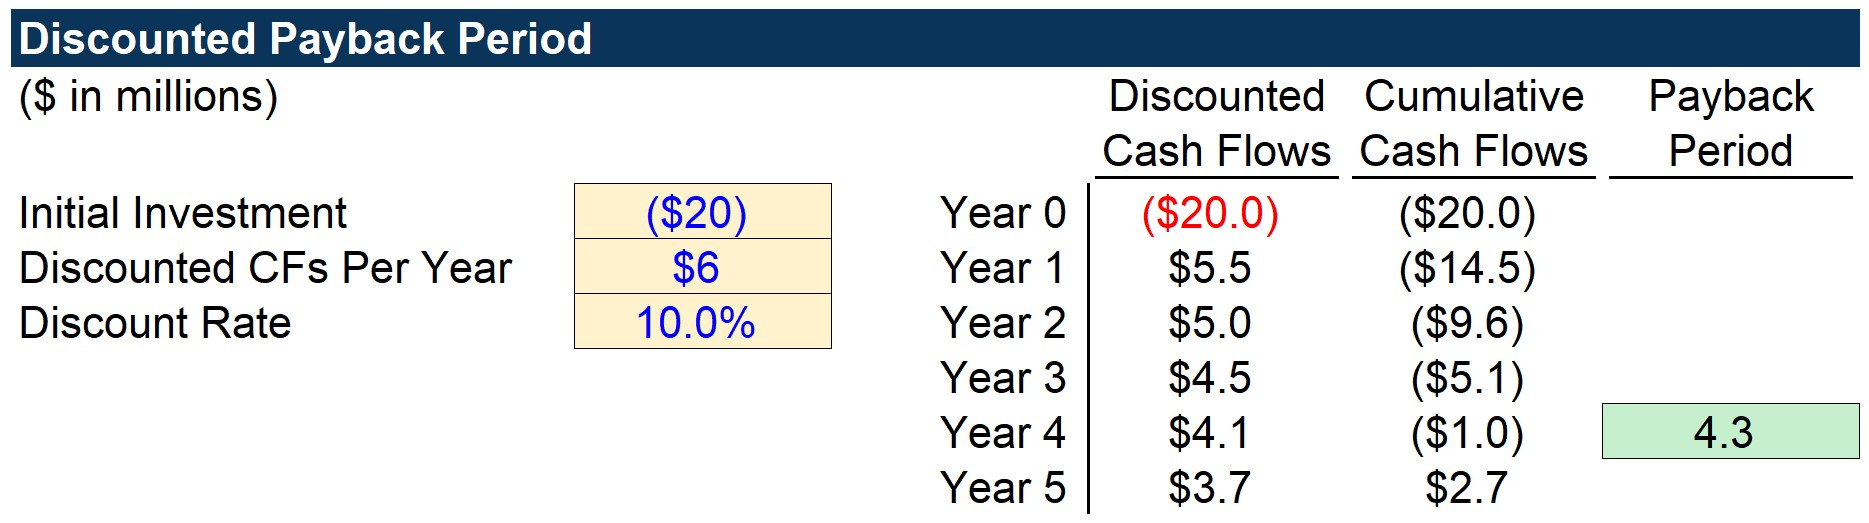 Discounted Payback Period Finished